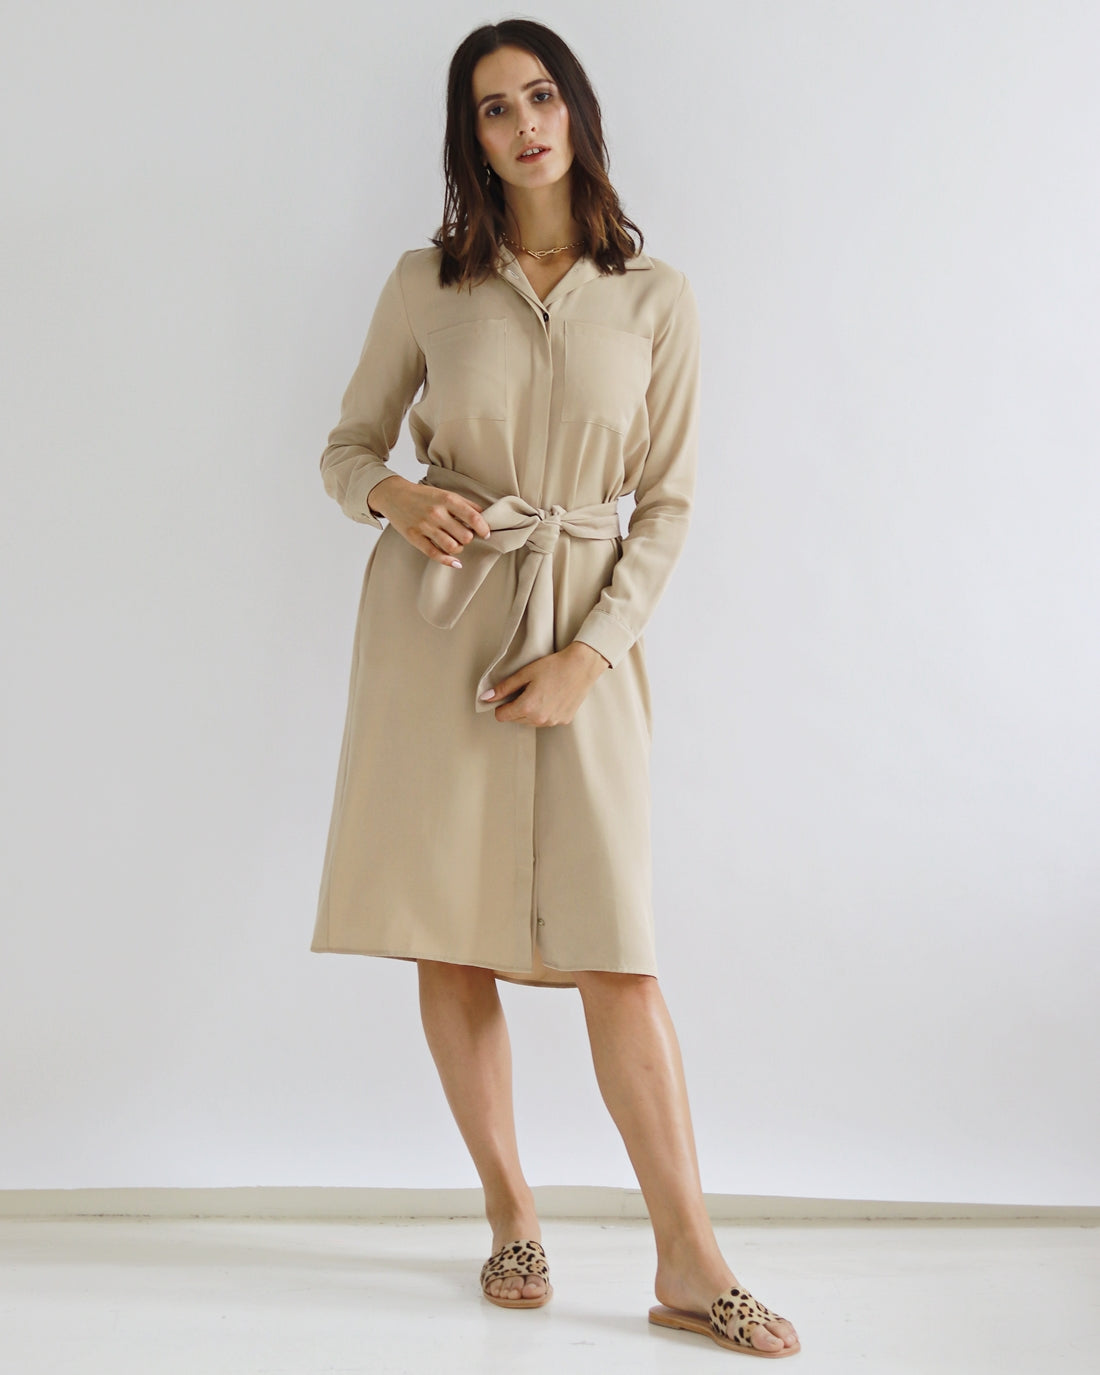 Malka Ginger Dress - Sarah Feldman Modest Clothing